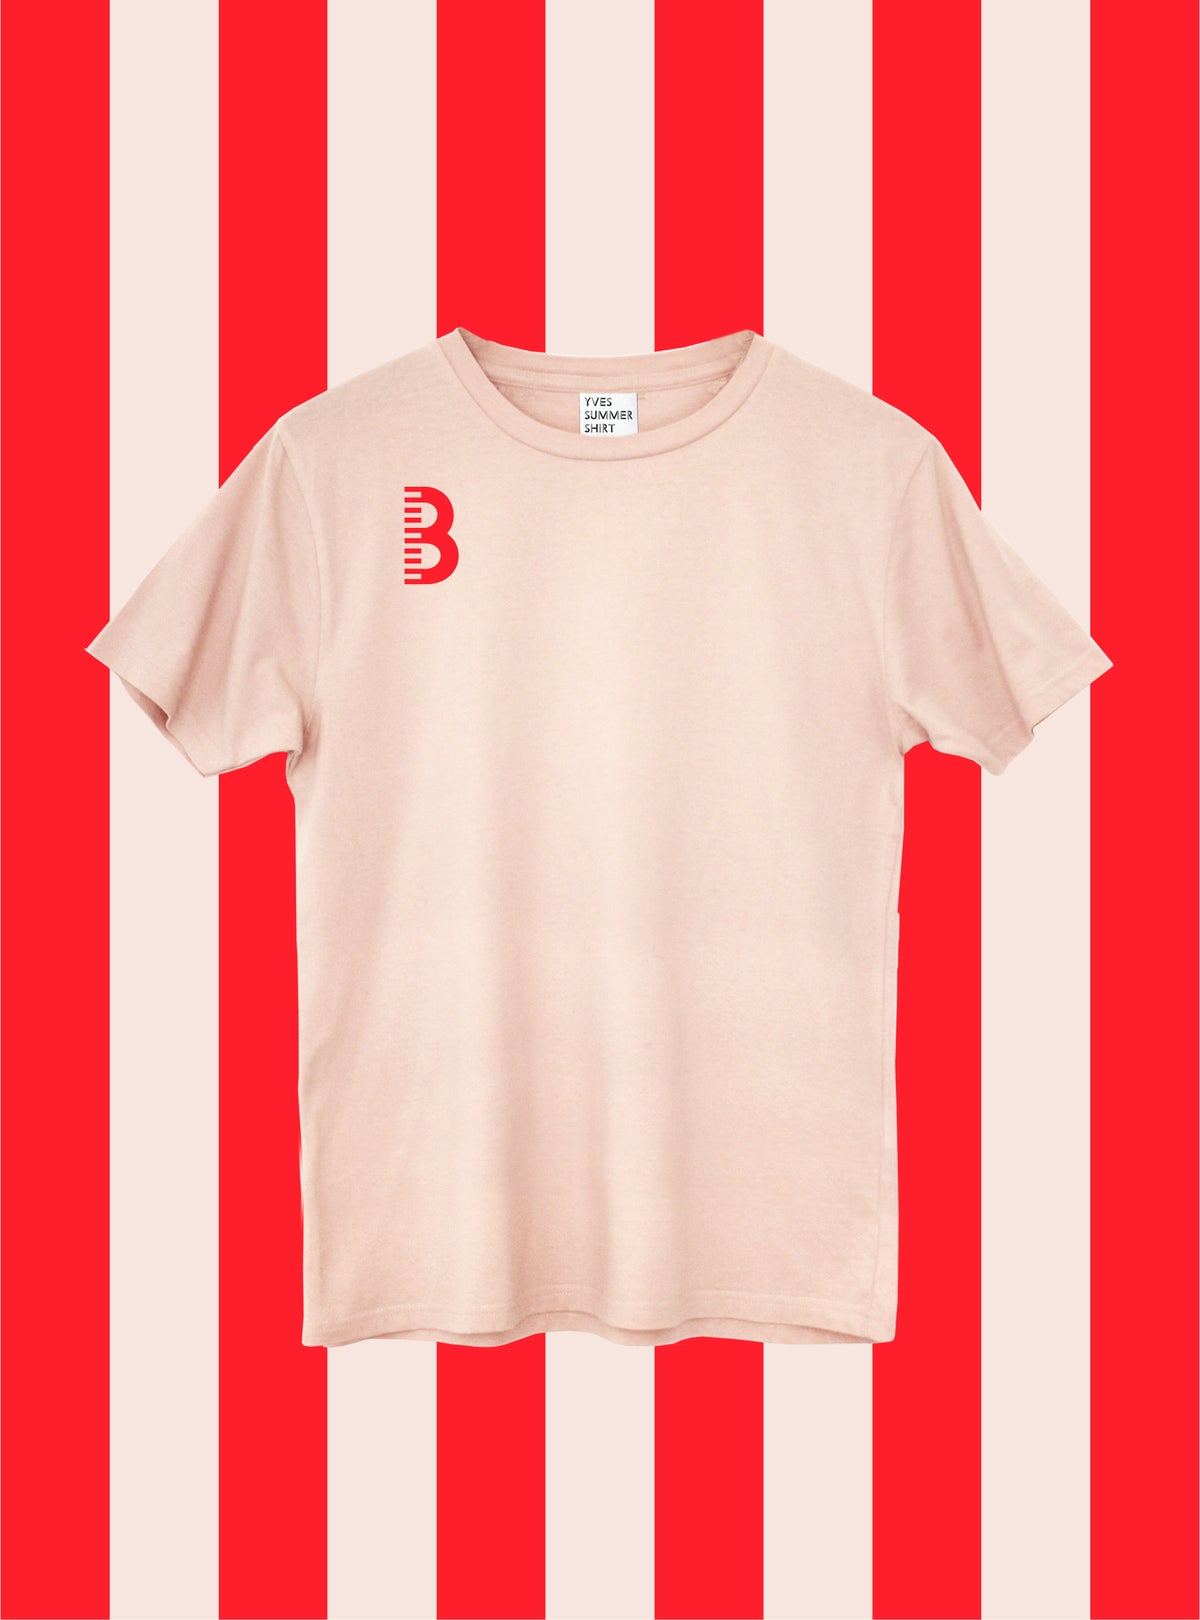 Image of B Summer Shirt